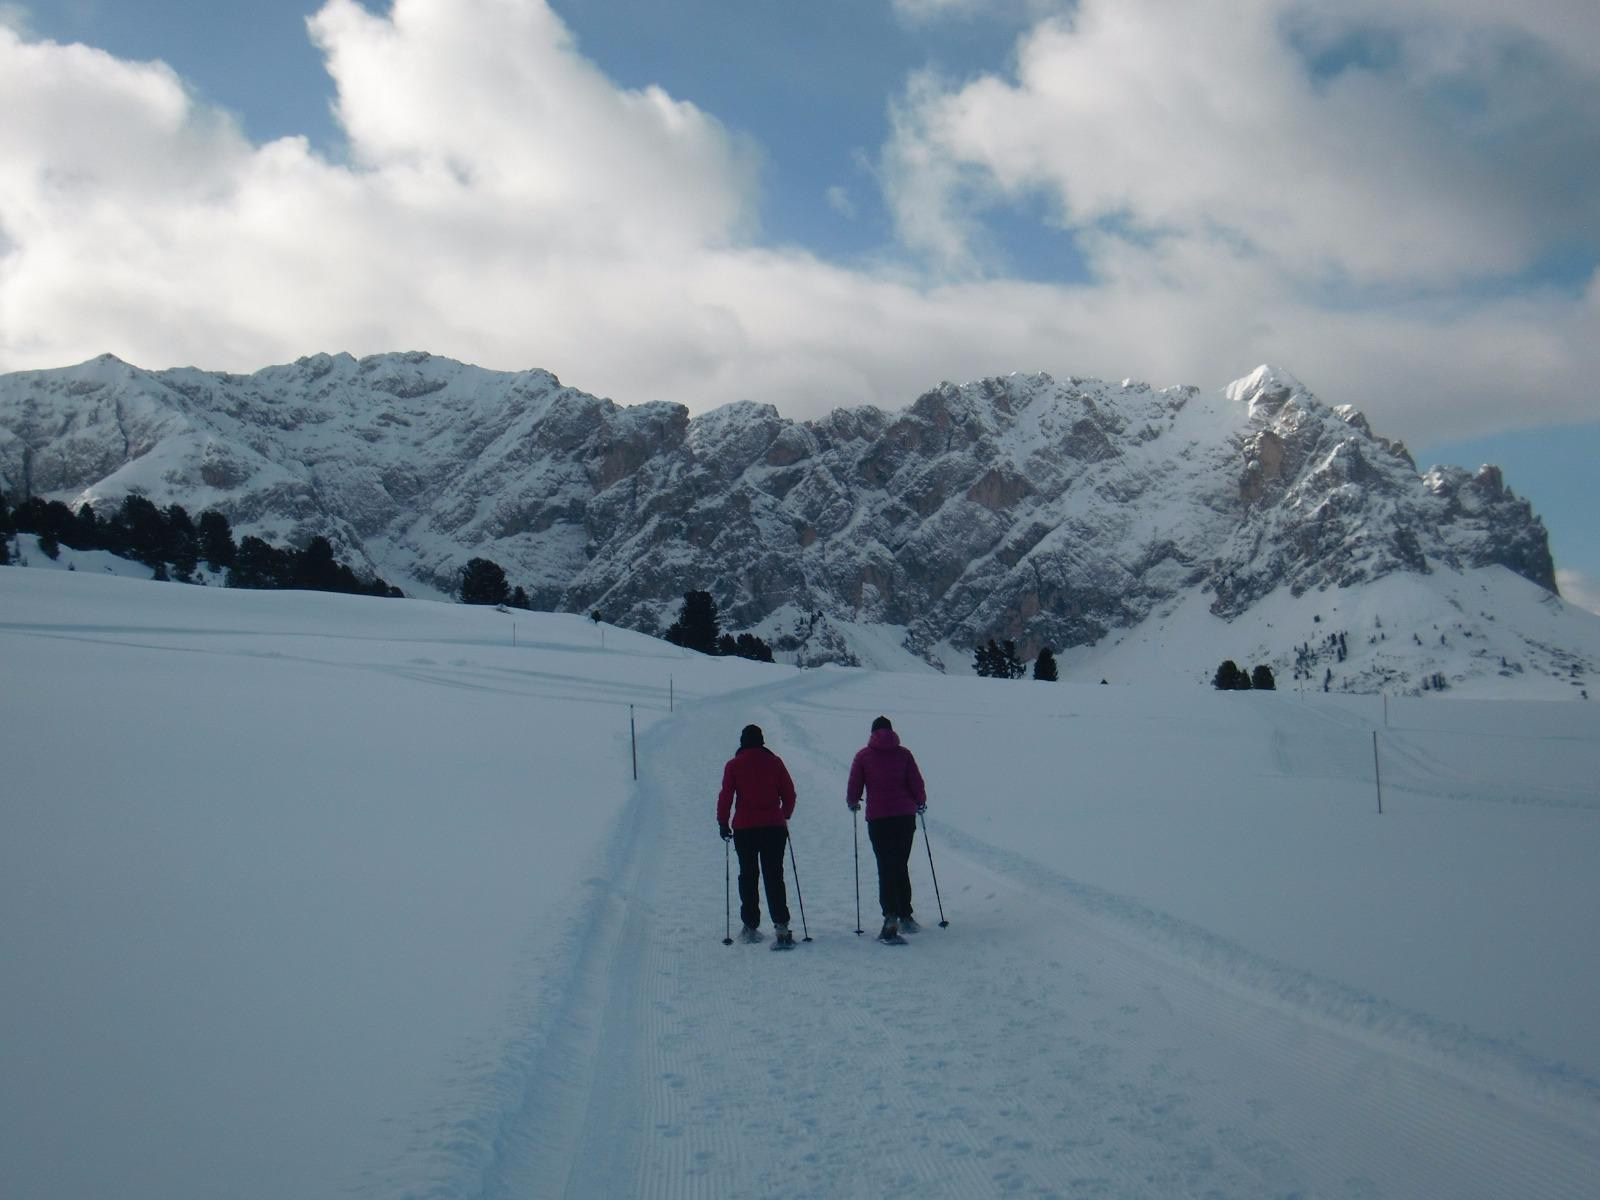 Hike in the Dolomites with Tiberio week programm